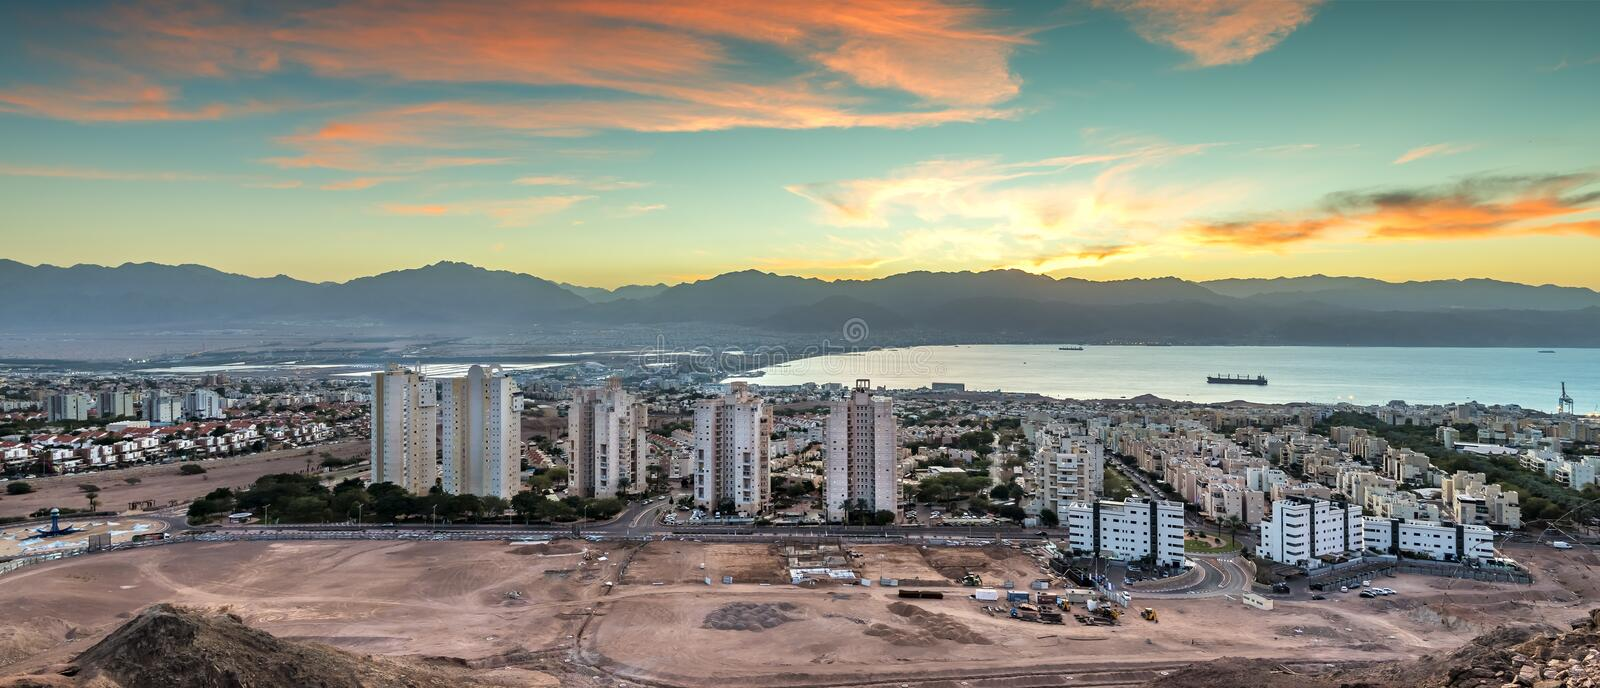 Morning view on Eilat from mountains, Israel royalty free stock photos